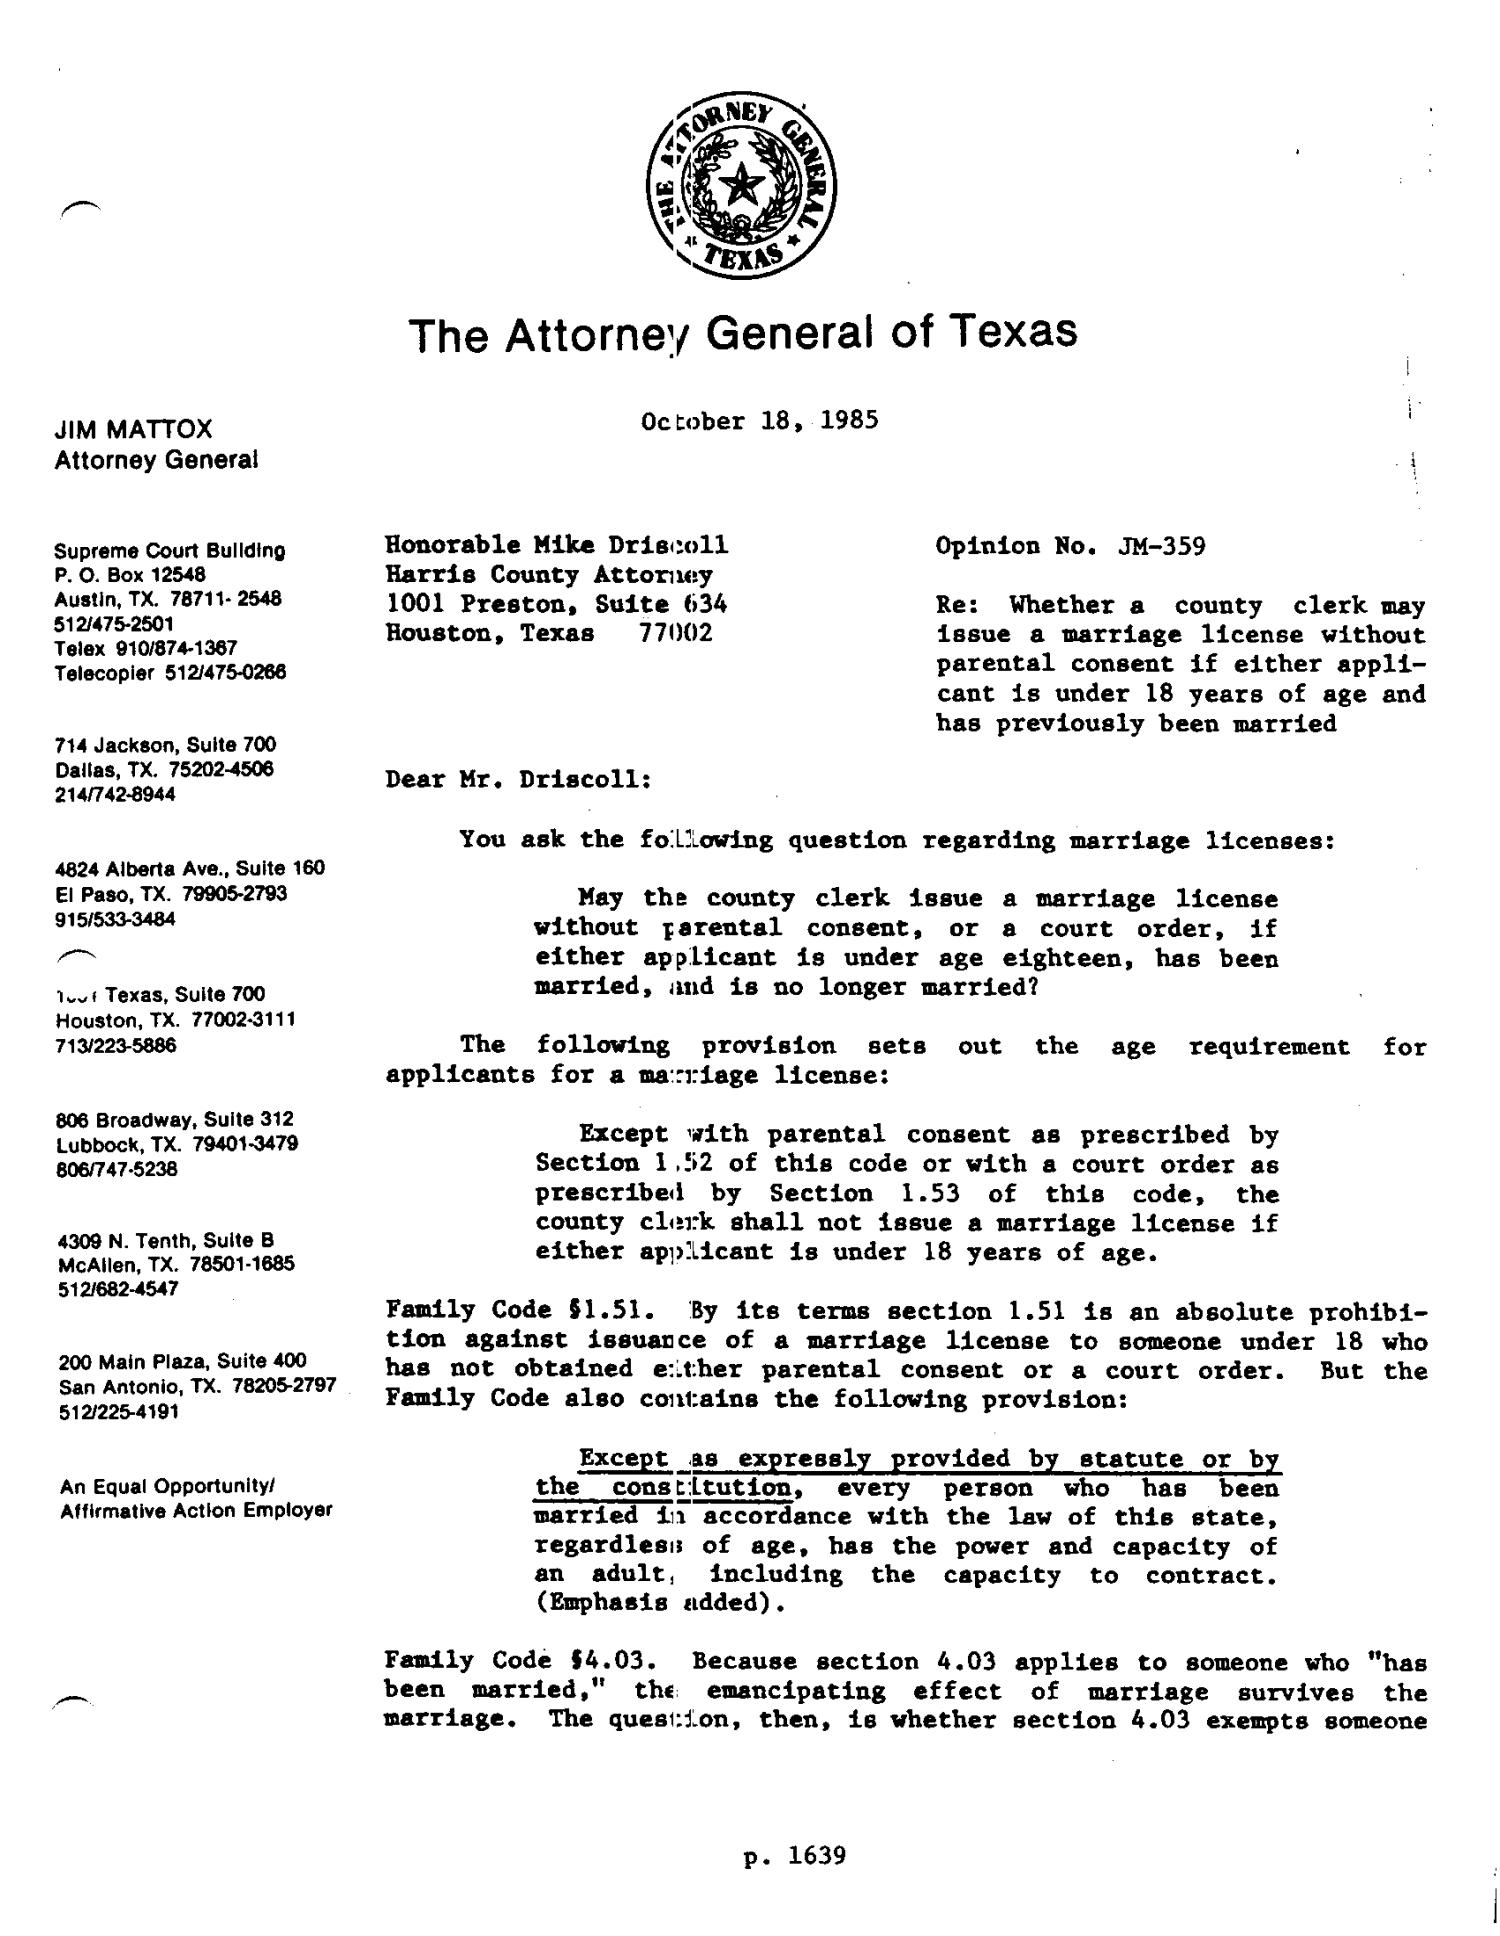 Texas Attorney General Opinion: JM-359 - Page 1 of 6 - The